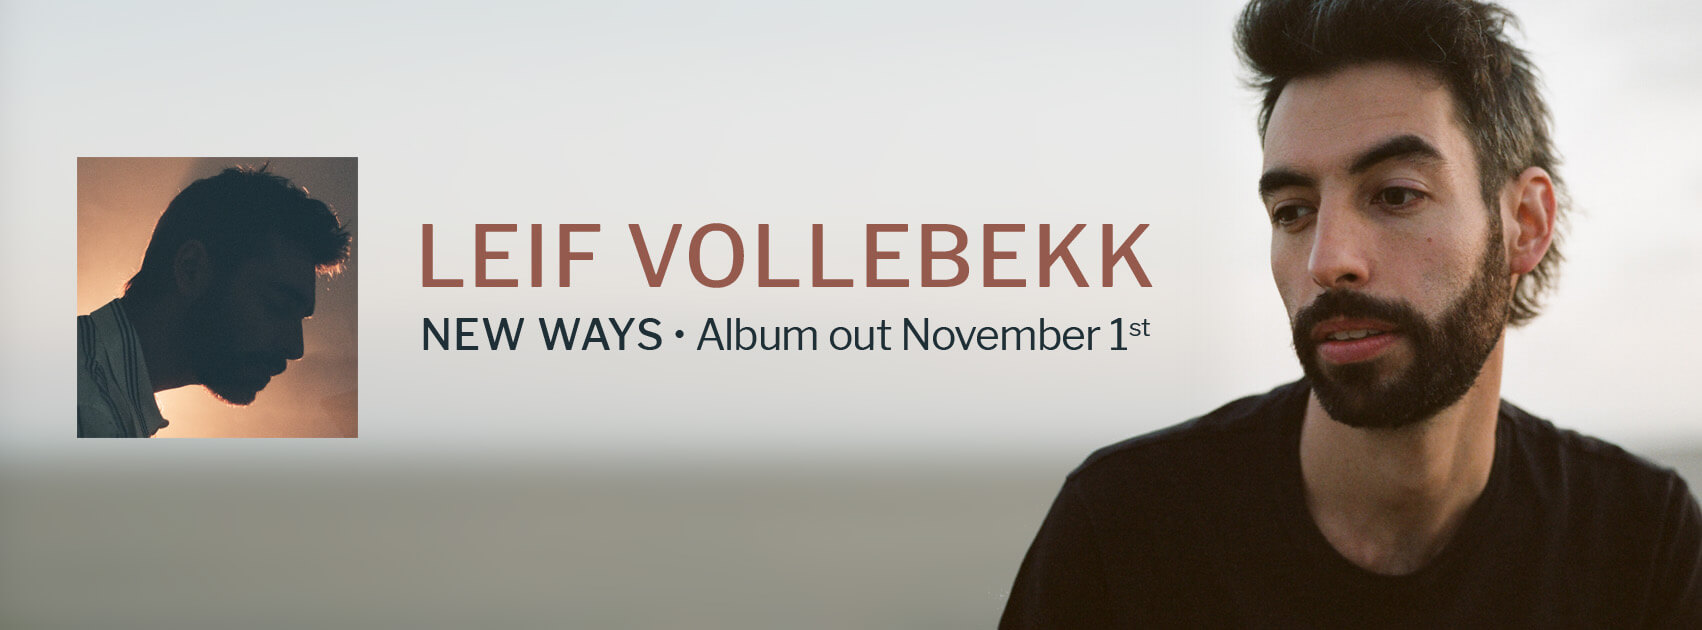 Leif Vollebekk New Ways